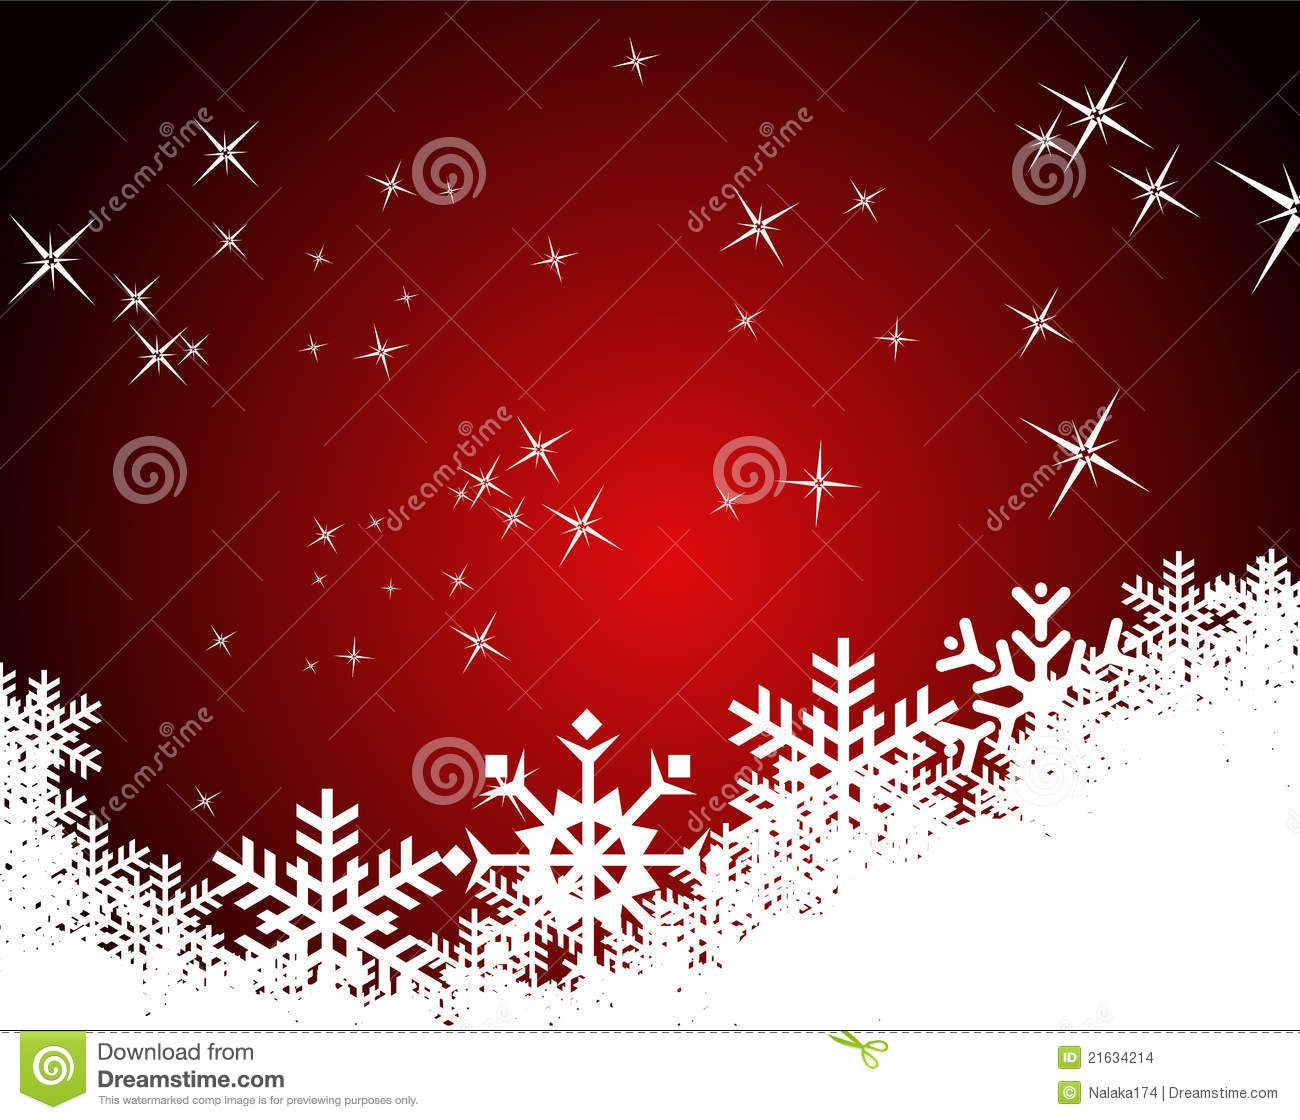 Blank Template For Christmas Greetings Card Stock Regarding Blank Quarter Christmas Card Templates Free Christmas Invitations Template Christmas Card Template